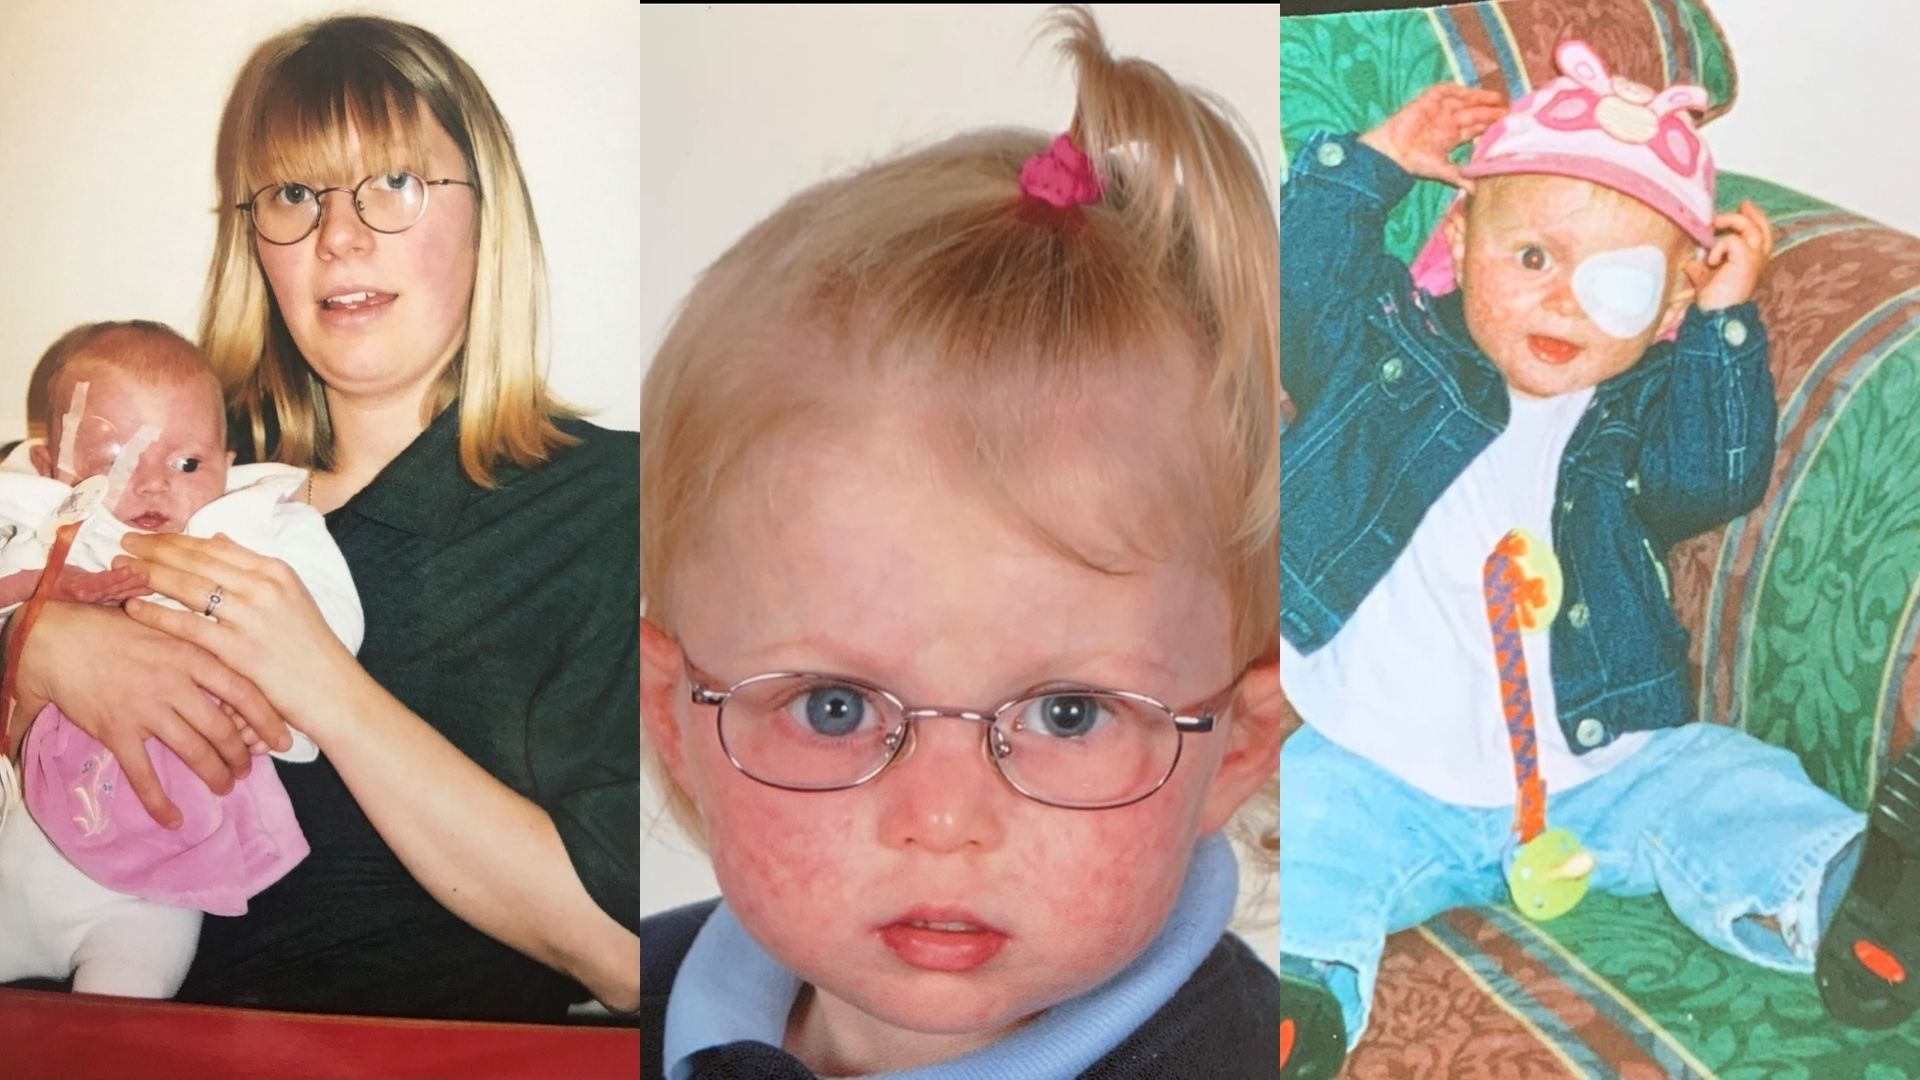 On left: a woman, mid-late 20s, with shoulder length blond hair and glasses is holding a baby in a white romper who has a patch over her right eye. In the centre: a school portrait of a young girl, 5-6 years old, wearing a blue polo, navy jumper and glasses. On the right: a toddler, sitting on a green and brown patterned sofa. She has an eye patch and short blond hair and is wearing a white t-shirt, light blue jeans and a navy jacket.